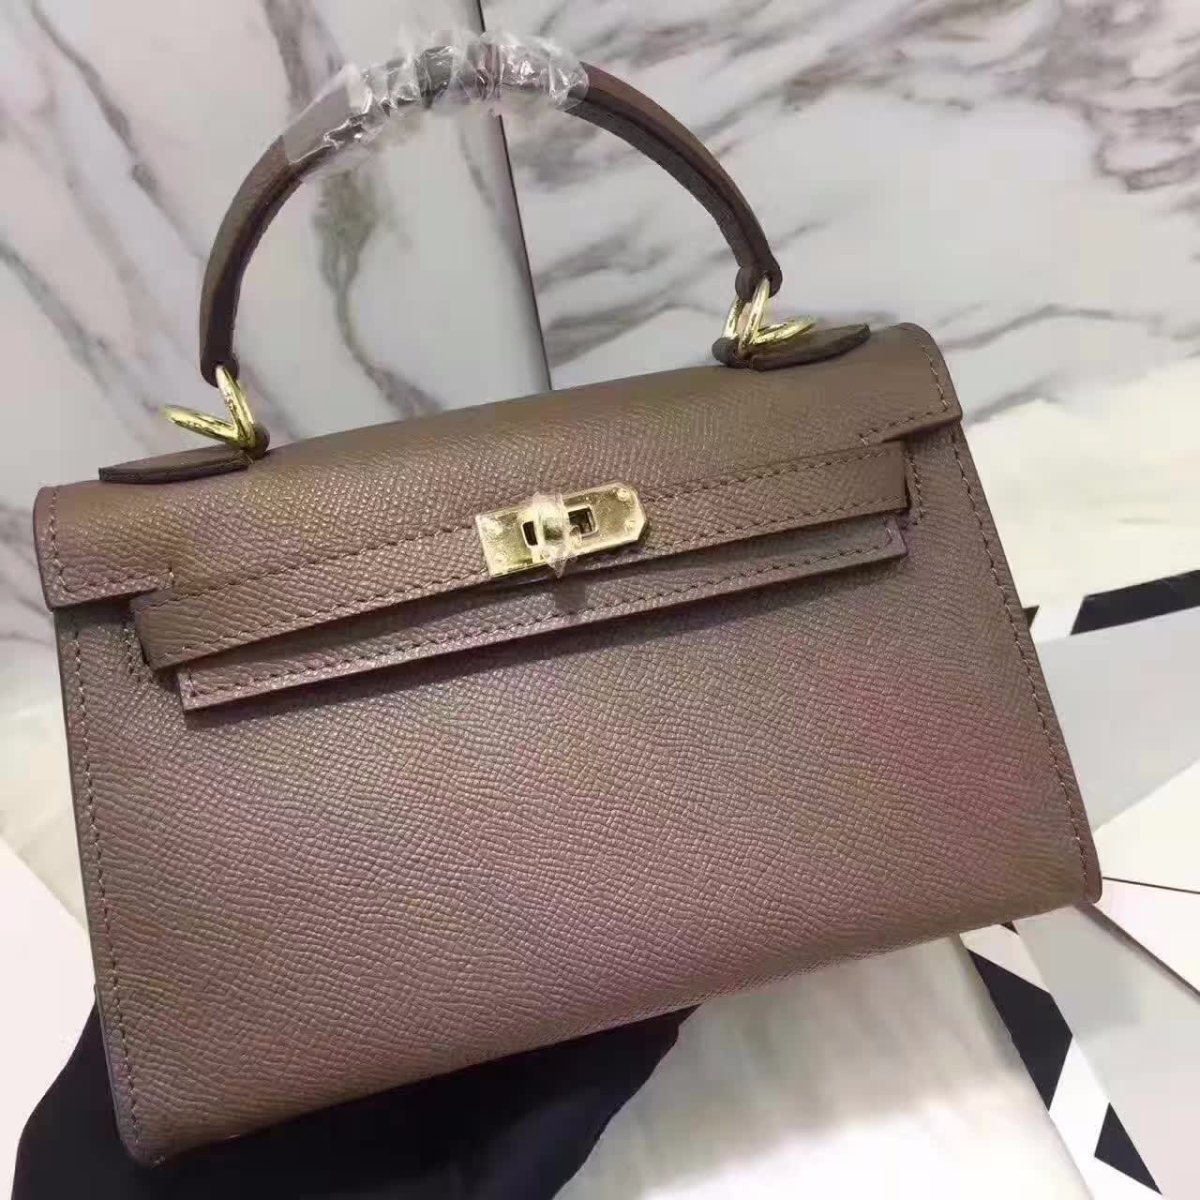 Hermes Mini Kelly Bag hhem591_0